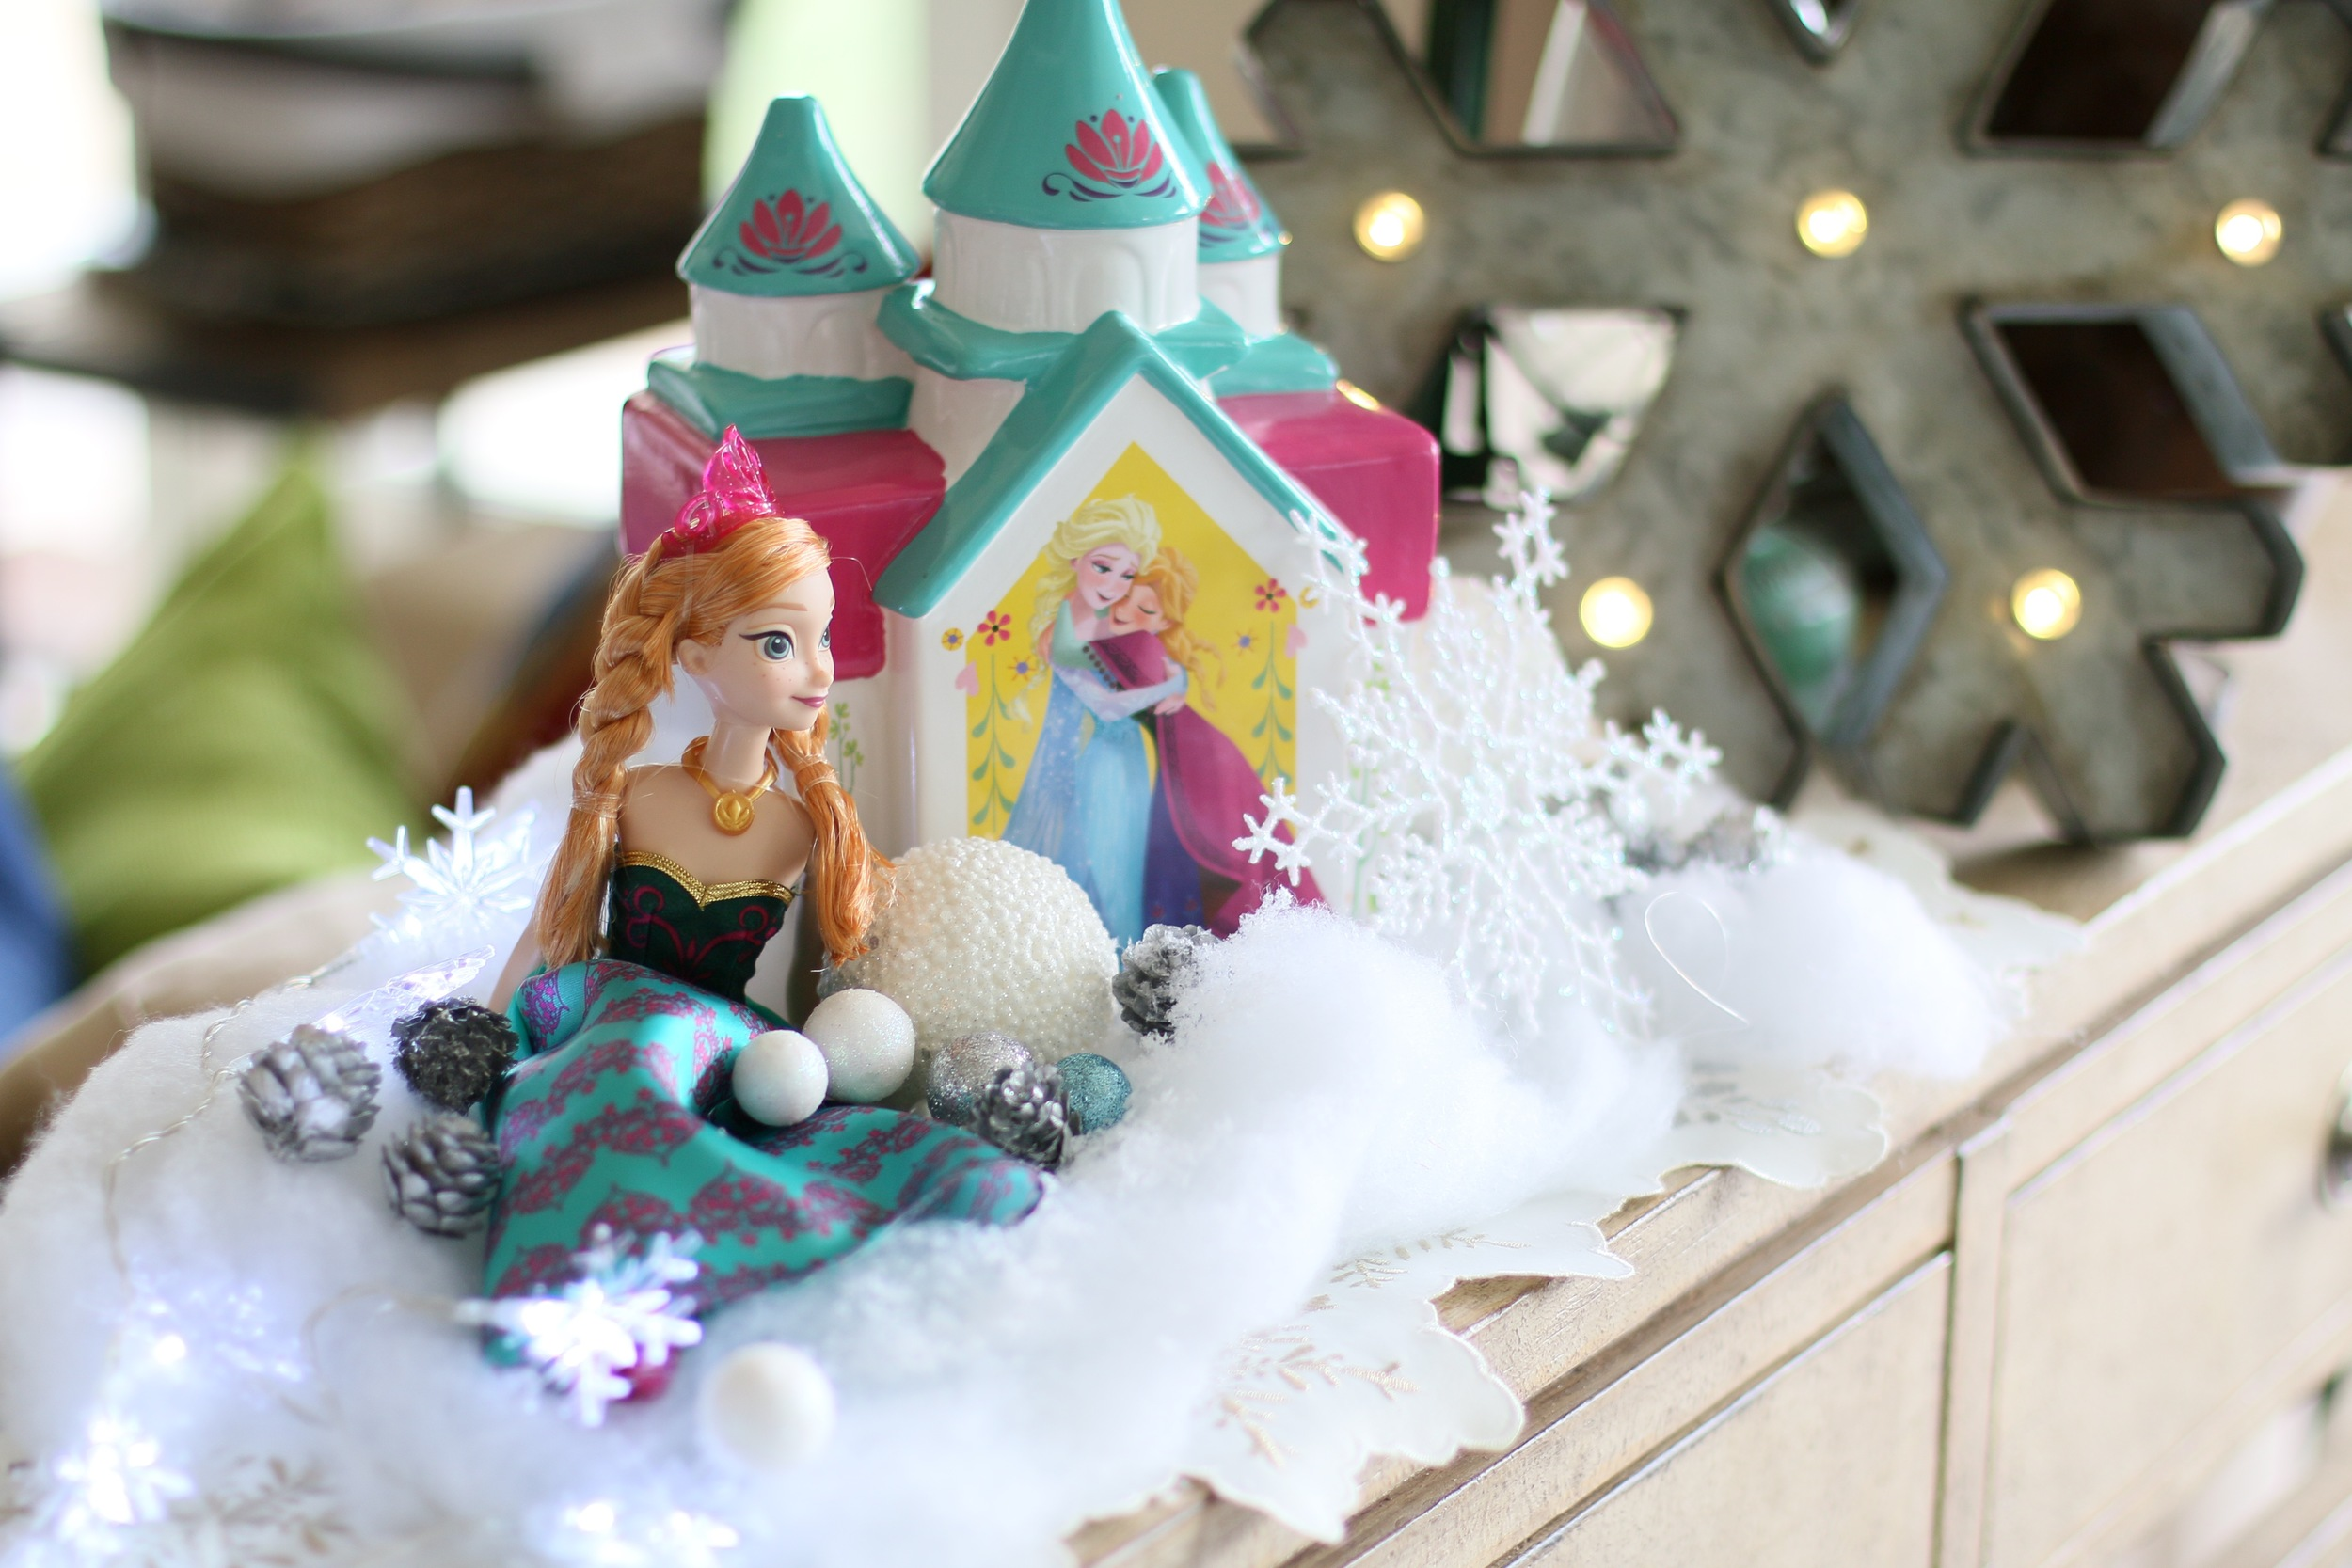 Anna & Elsa decor for your FROZEN party! @inJOYtheParty